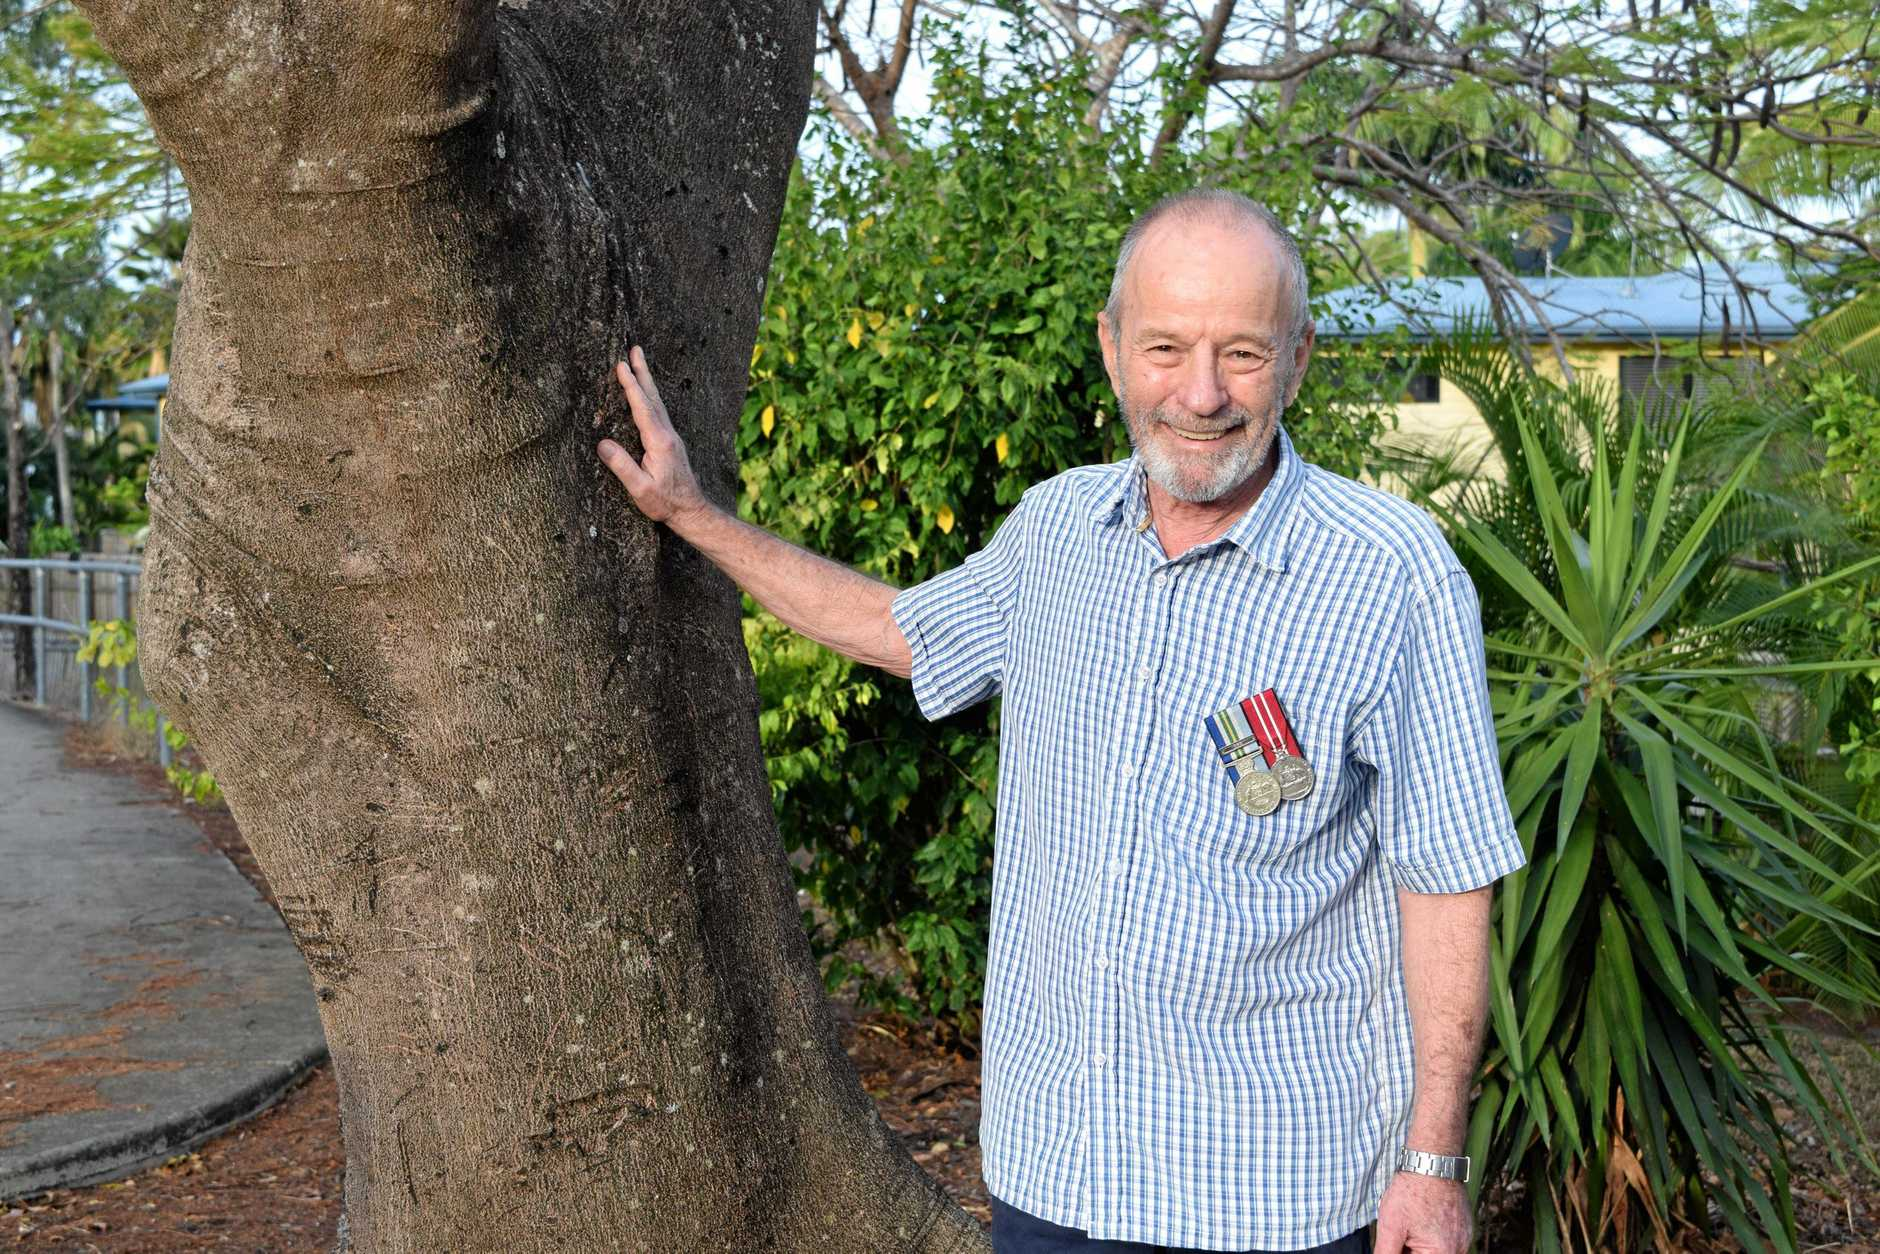 Cannonvale veteran Martin Hart served in the Australian Army from 1962 to 1968 as a topographic surveyor.